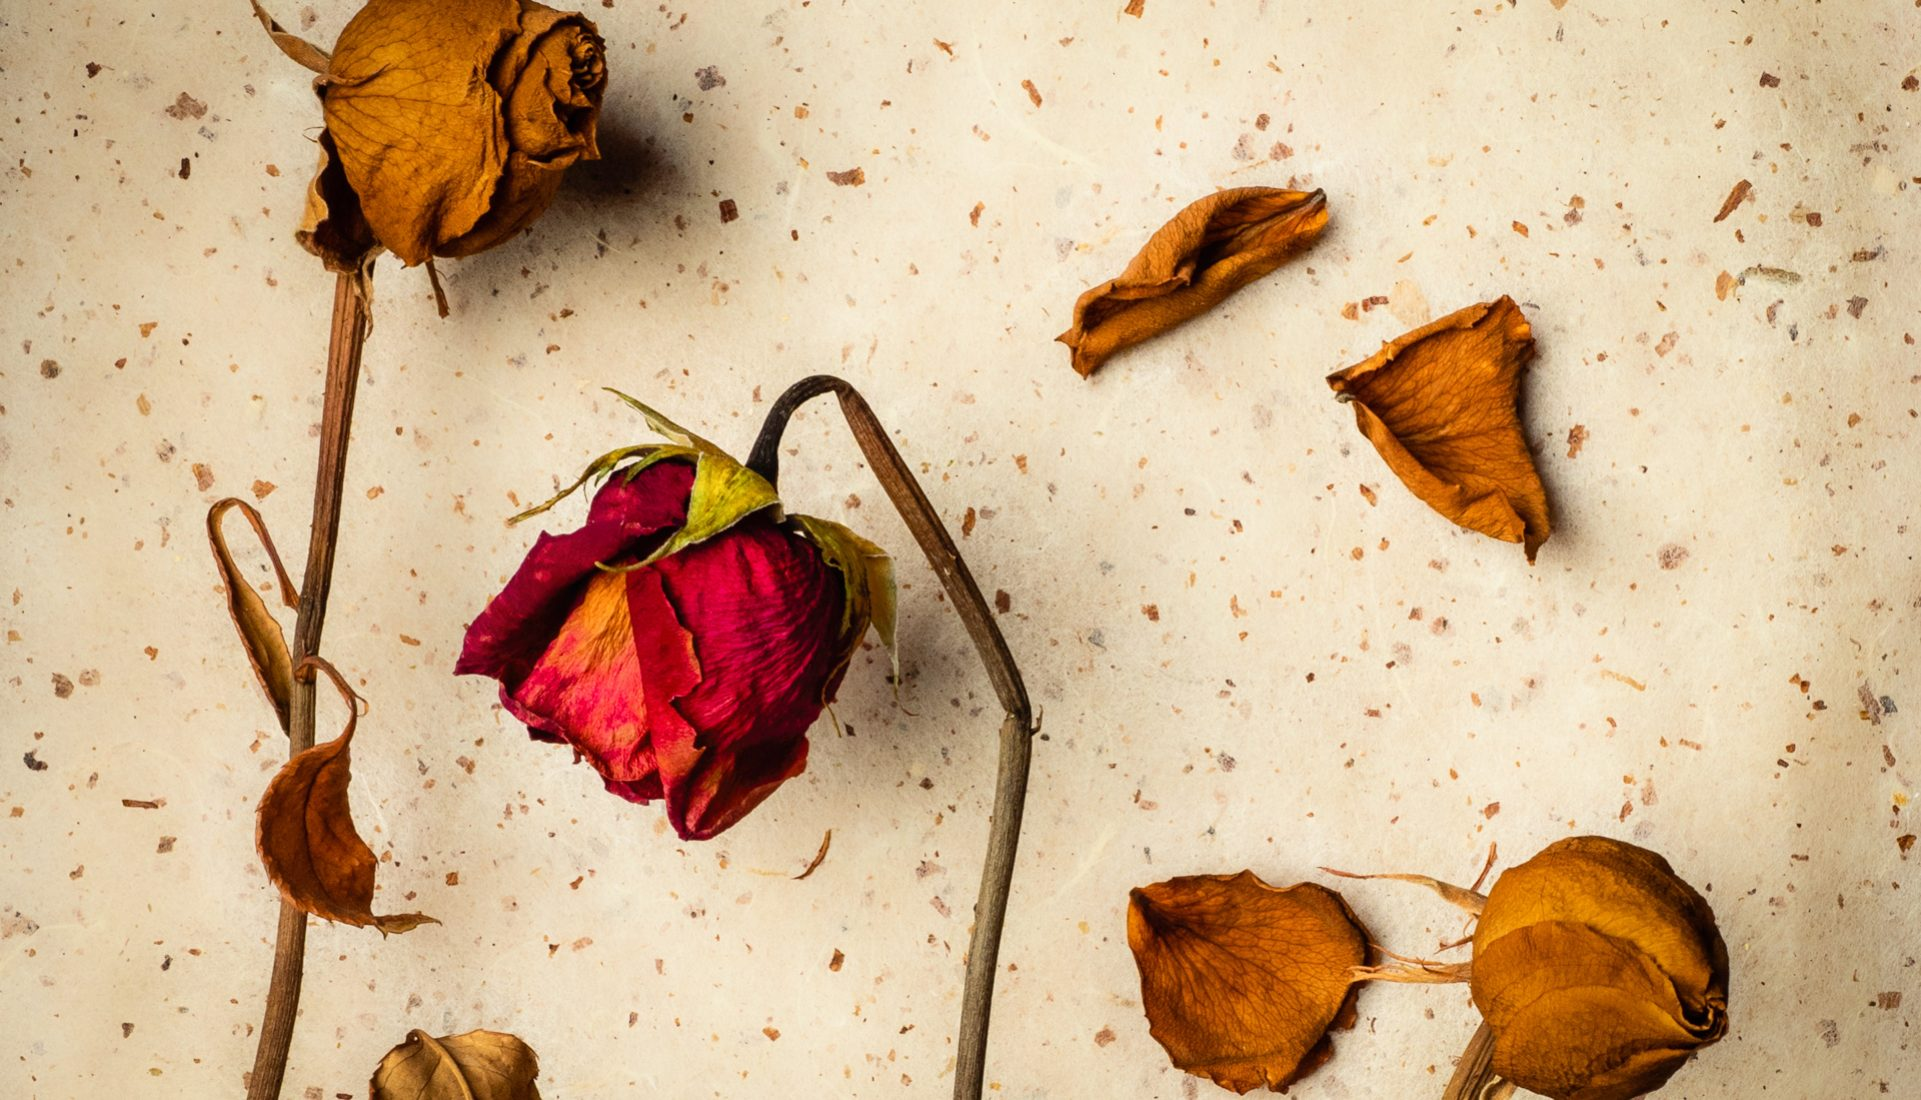 Rose Buds | Everlasting Beauty